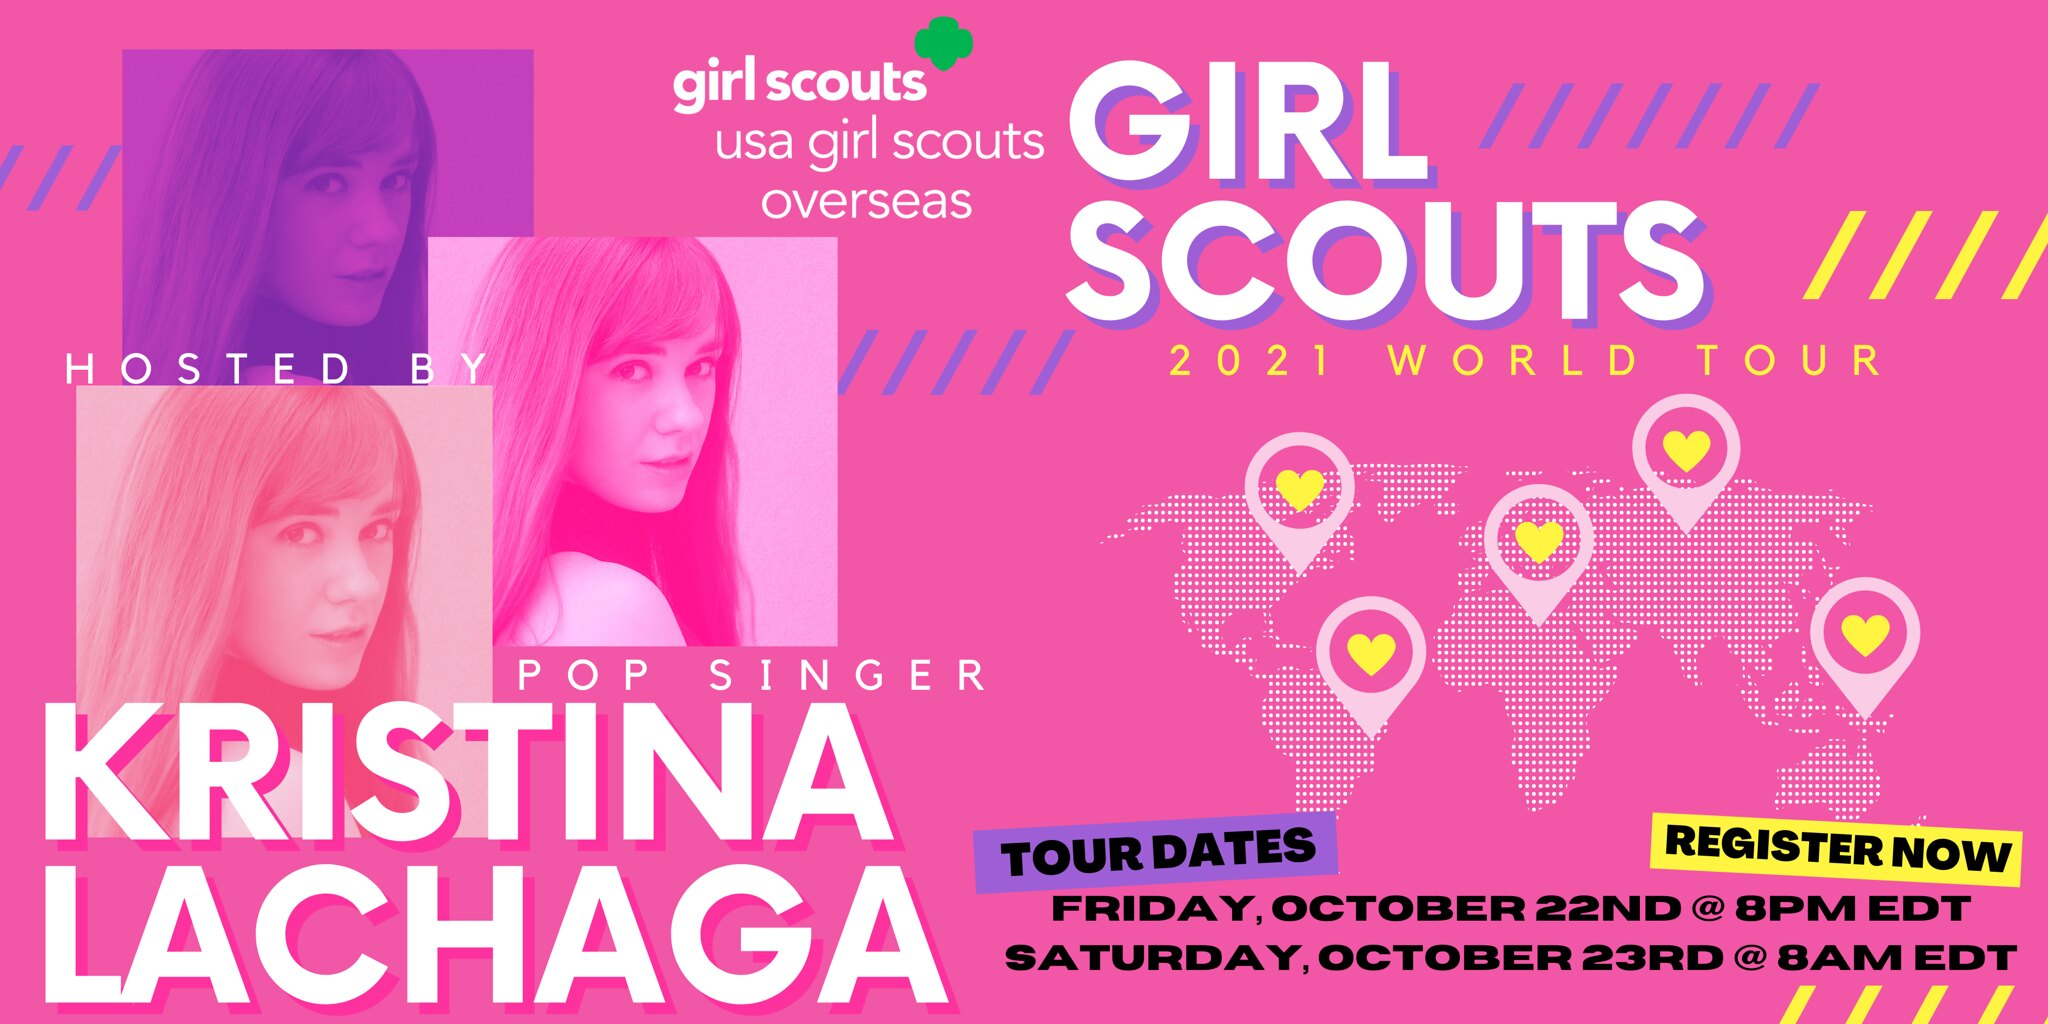 Kristina Lachaga can't wait to host & perform at USA Girl Scouts' World Tour!